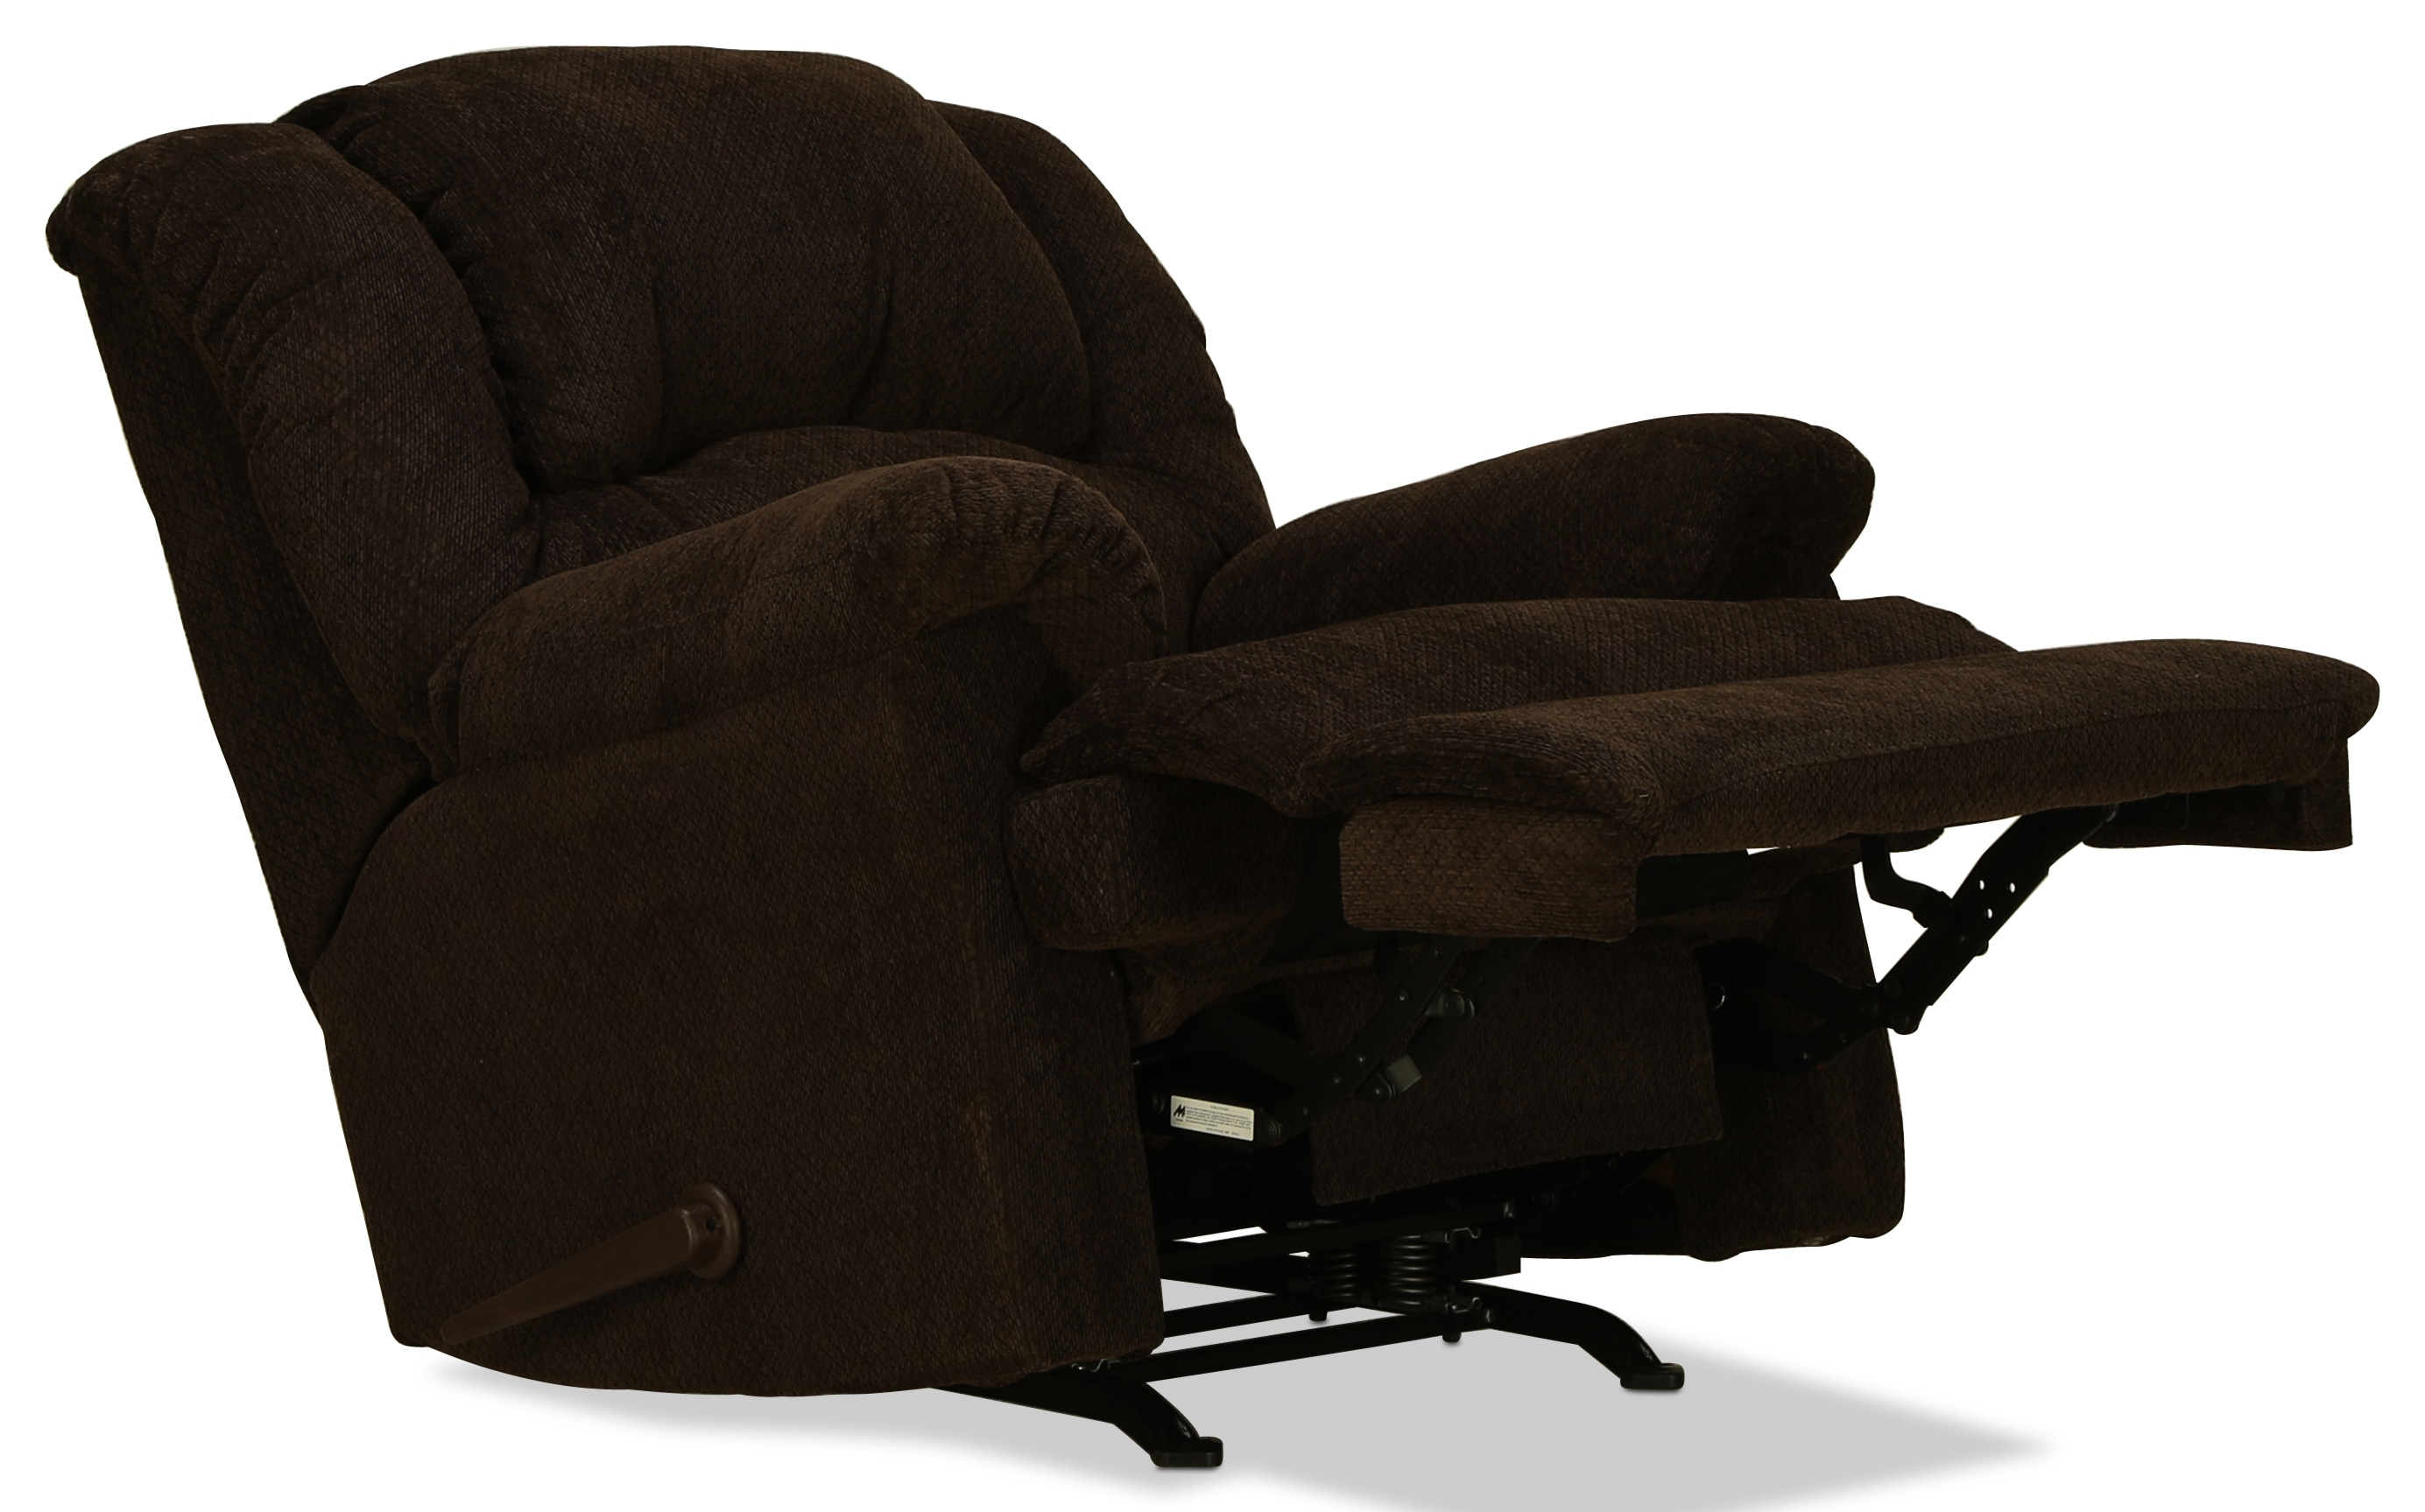 Decker Rocker Recliner – Chocolate | Intended For Decker Ii Fabric Swivel Glider Recliners (Image 7 of 20)